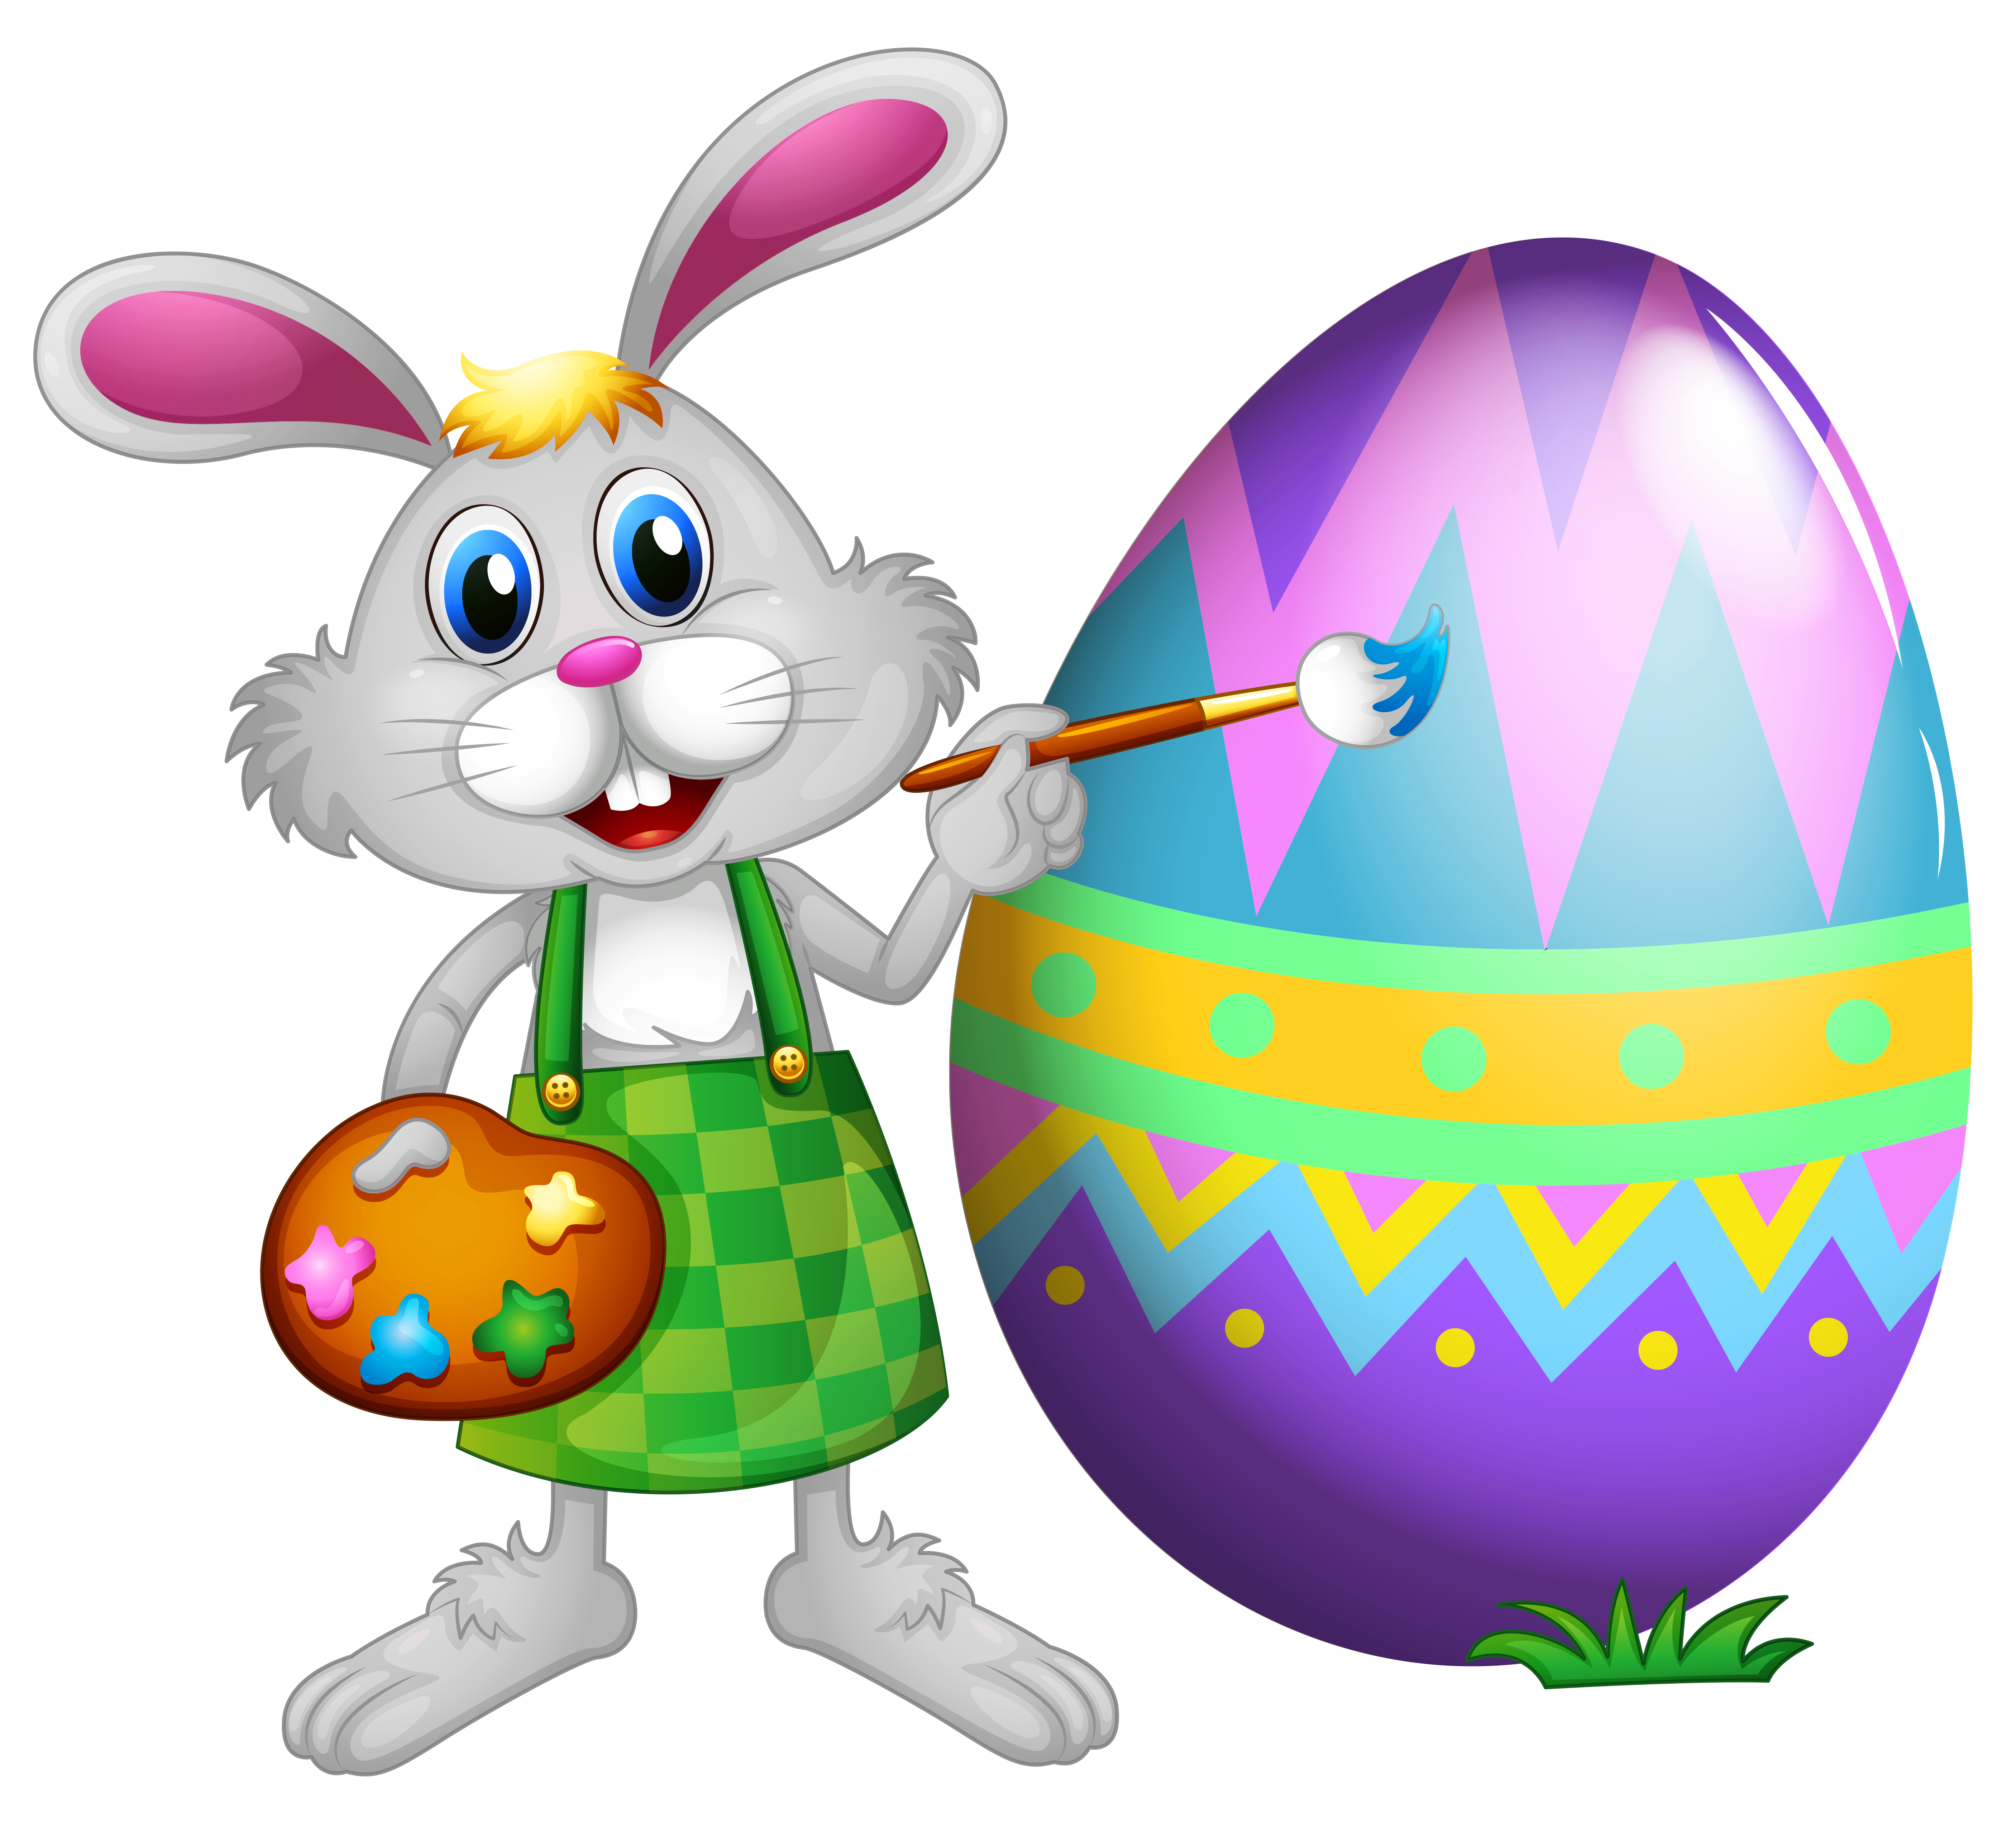 Clip Art Of Easter Bunny . - Easter Bunny Clipart